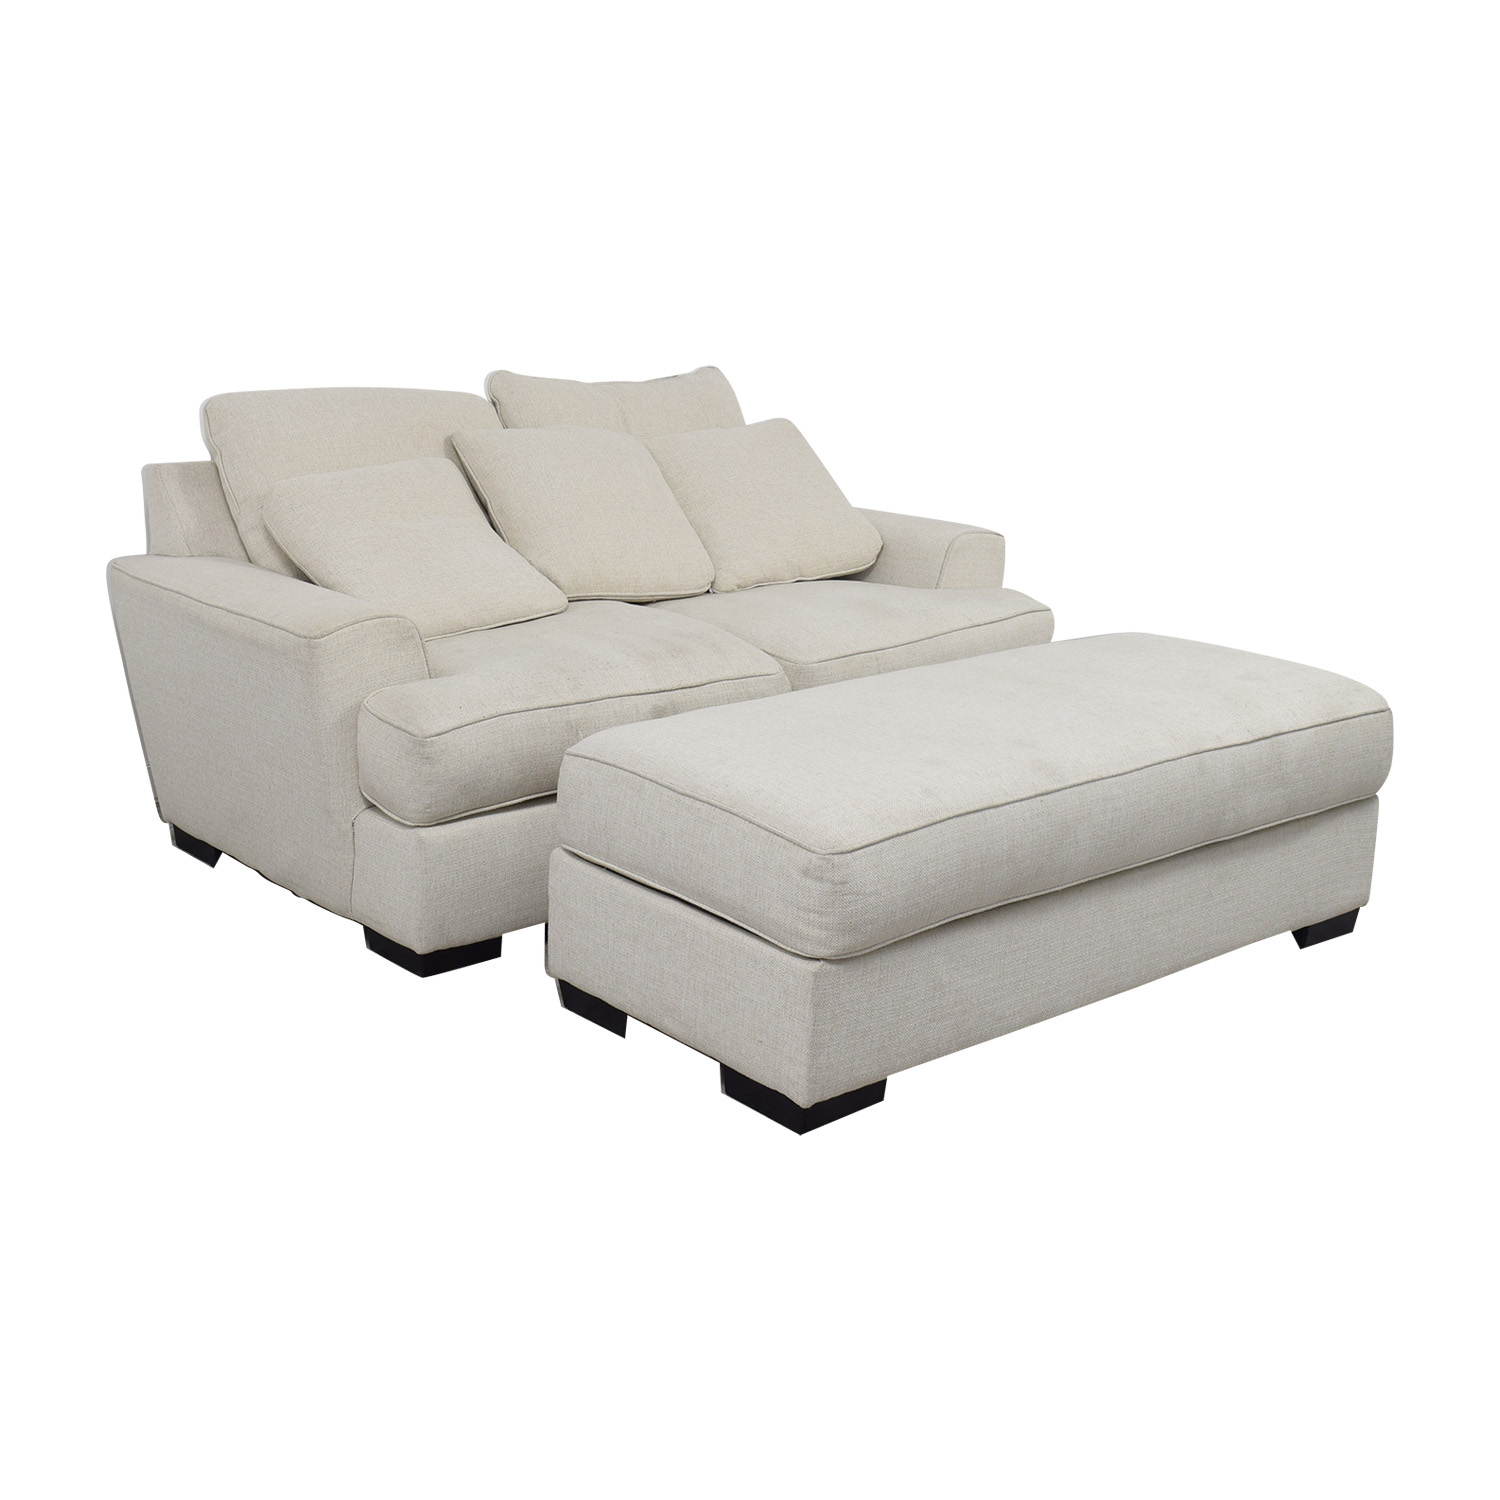 90 Off Macy S Macy S Ainsley Off White Loveseat And Ottoman Sofas